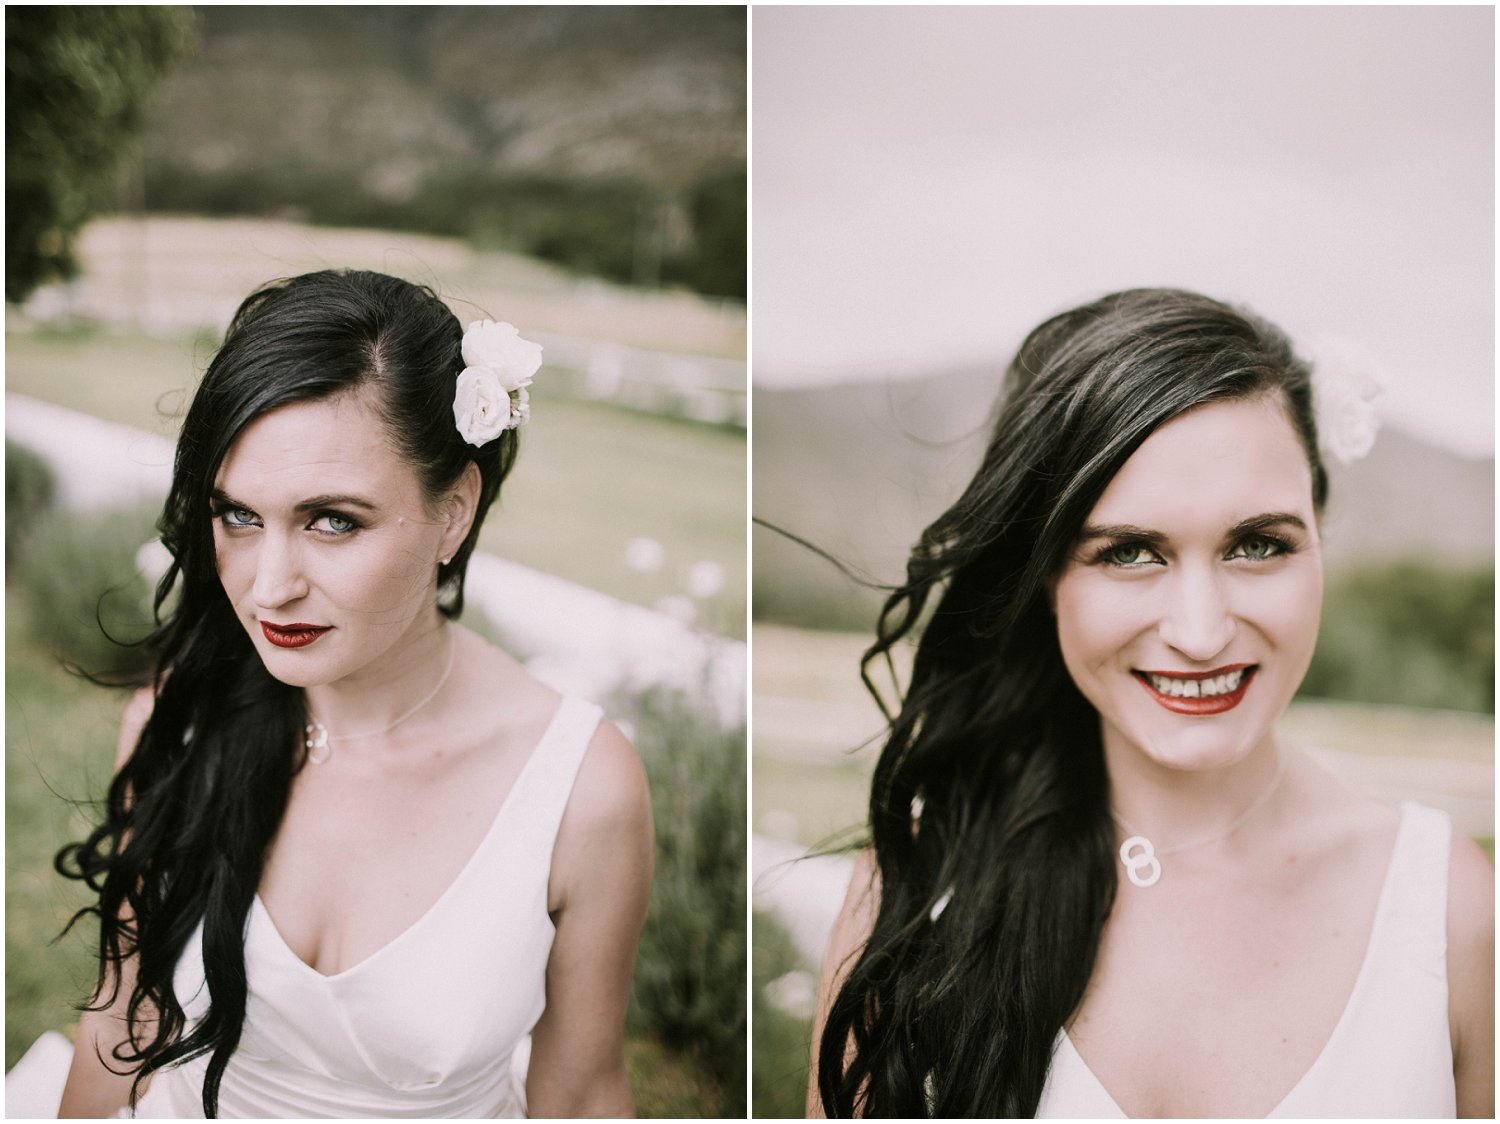 Top Wedding Photographer Cape Town South Africa Artistic Creative Documentary Wedding Photography Rue Kruger_0834.jpg